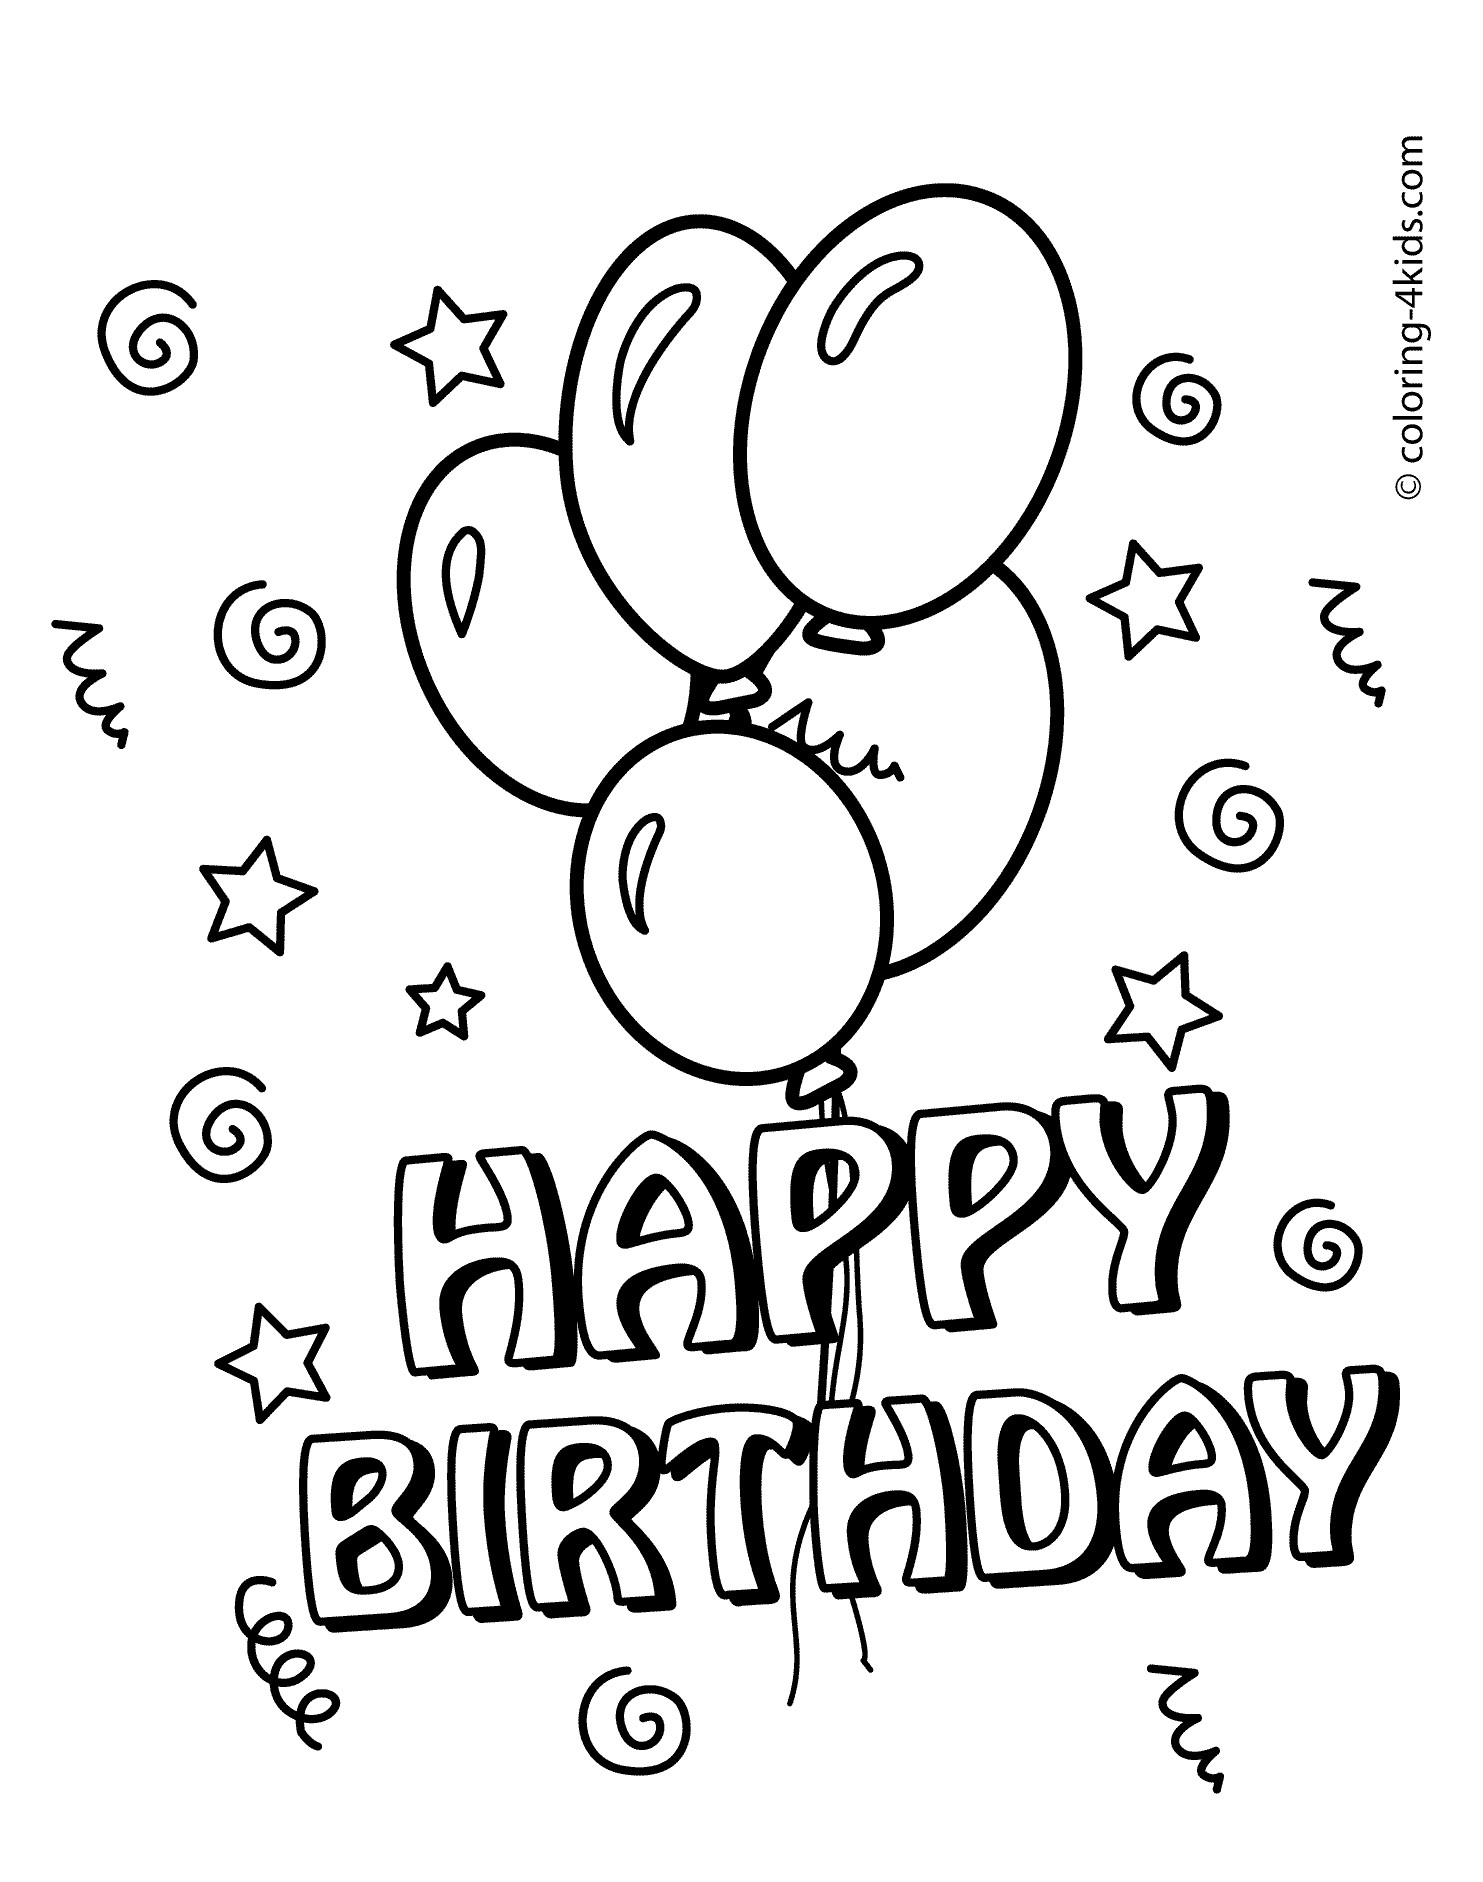 happy birthday coloring pages for grandmas ; fresh-coloring-pages-grandma-birthday-fresh-happy-birthday-coloring-of-coloring-pages-grandma-birthday